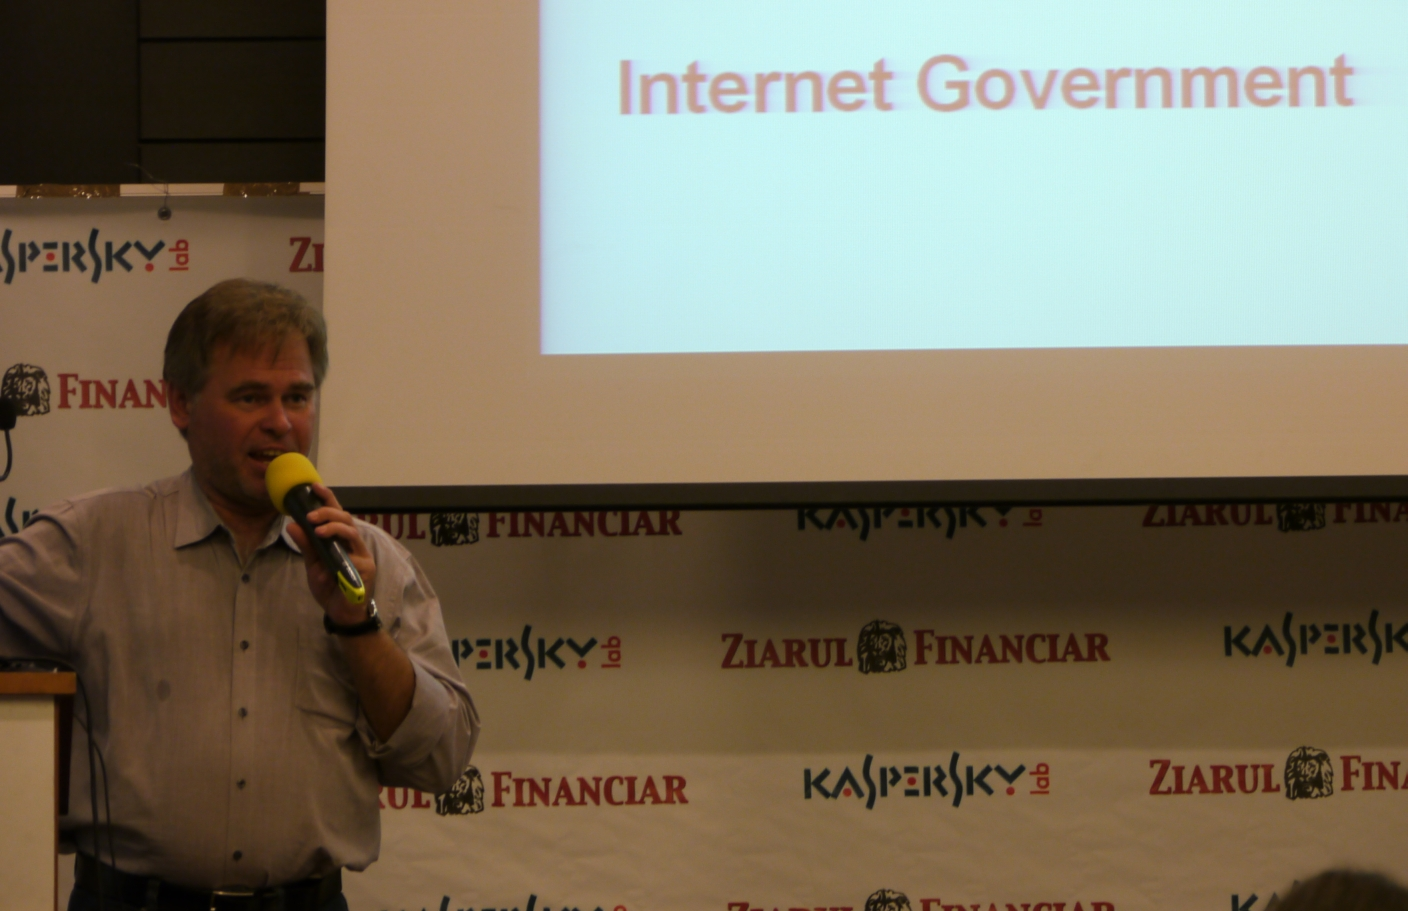 kaspersky_internet_government